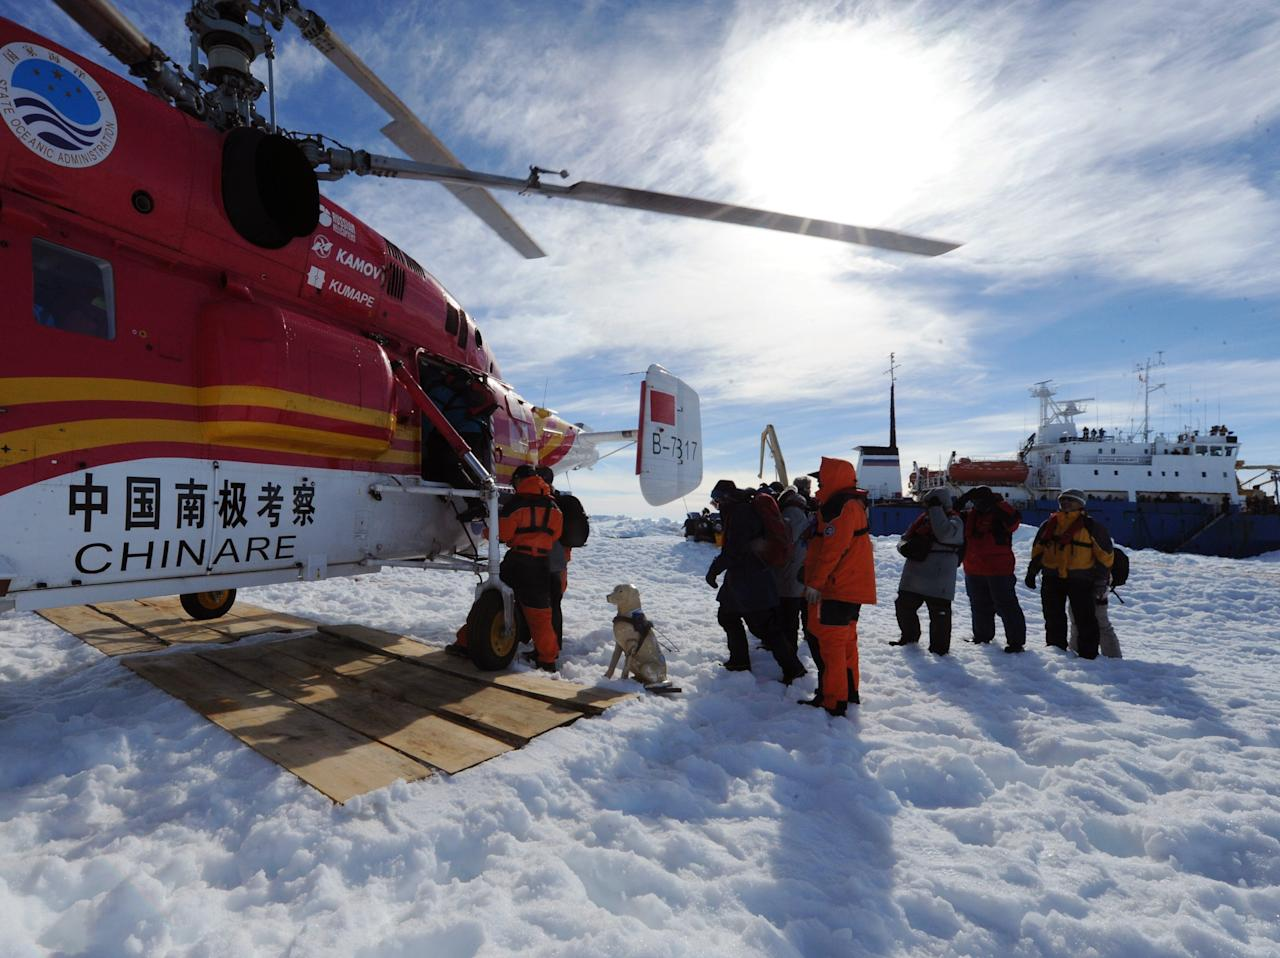 In this photo provided China's official Xinhnua News Agency, passengers from the trapped Russian vessel MV Akademik Shokalskiy, seen at right, prepare to board the Chinese helicopter Xueying 12 in the Antarctic Thursday, Jan. 2, 2014. A helicopter rescued all 52 passengers from the research ship that has been trapped in Antarctic ice, 1,500 nautical miles south of Hobart, Australia, since Christmas Eve after weather conditions finally cleared enough for the operation Thursday. (AP Photo/Xinhua, Zhang Jiansong) NO SALES